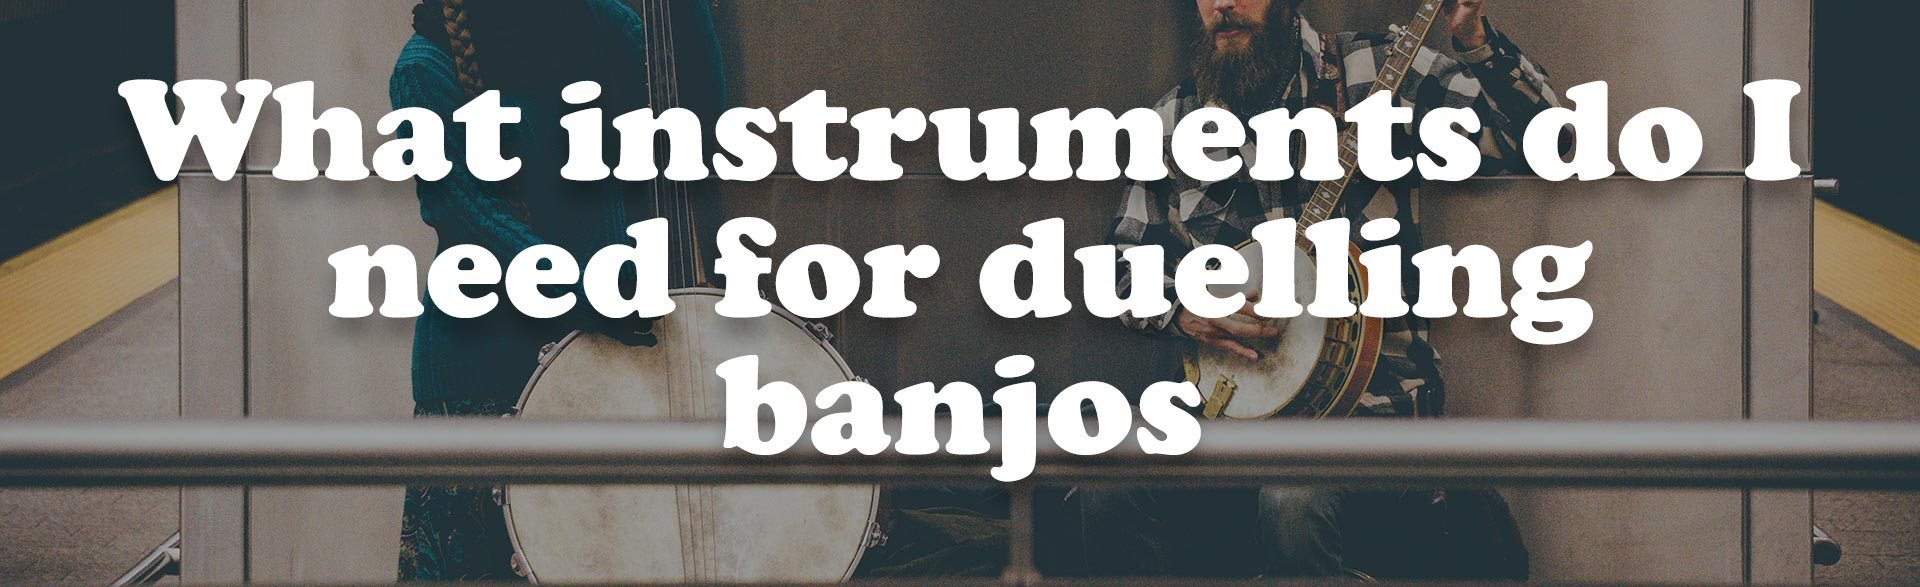 What instruments do I need for duelling banjos